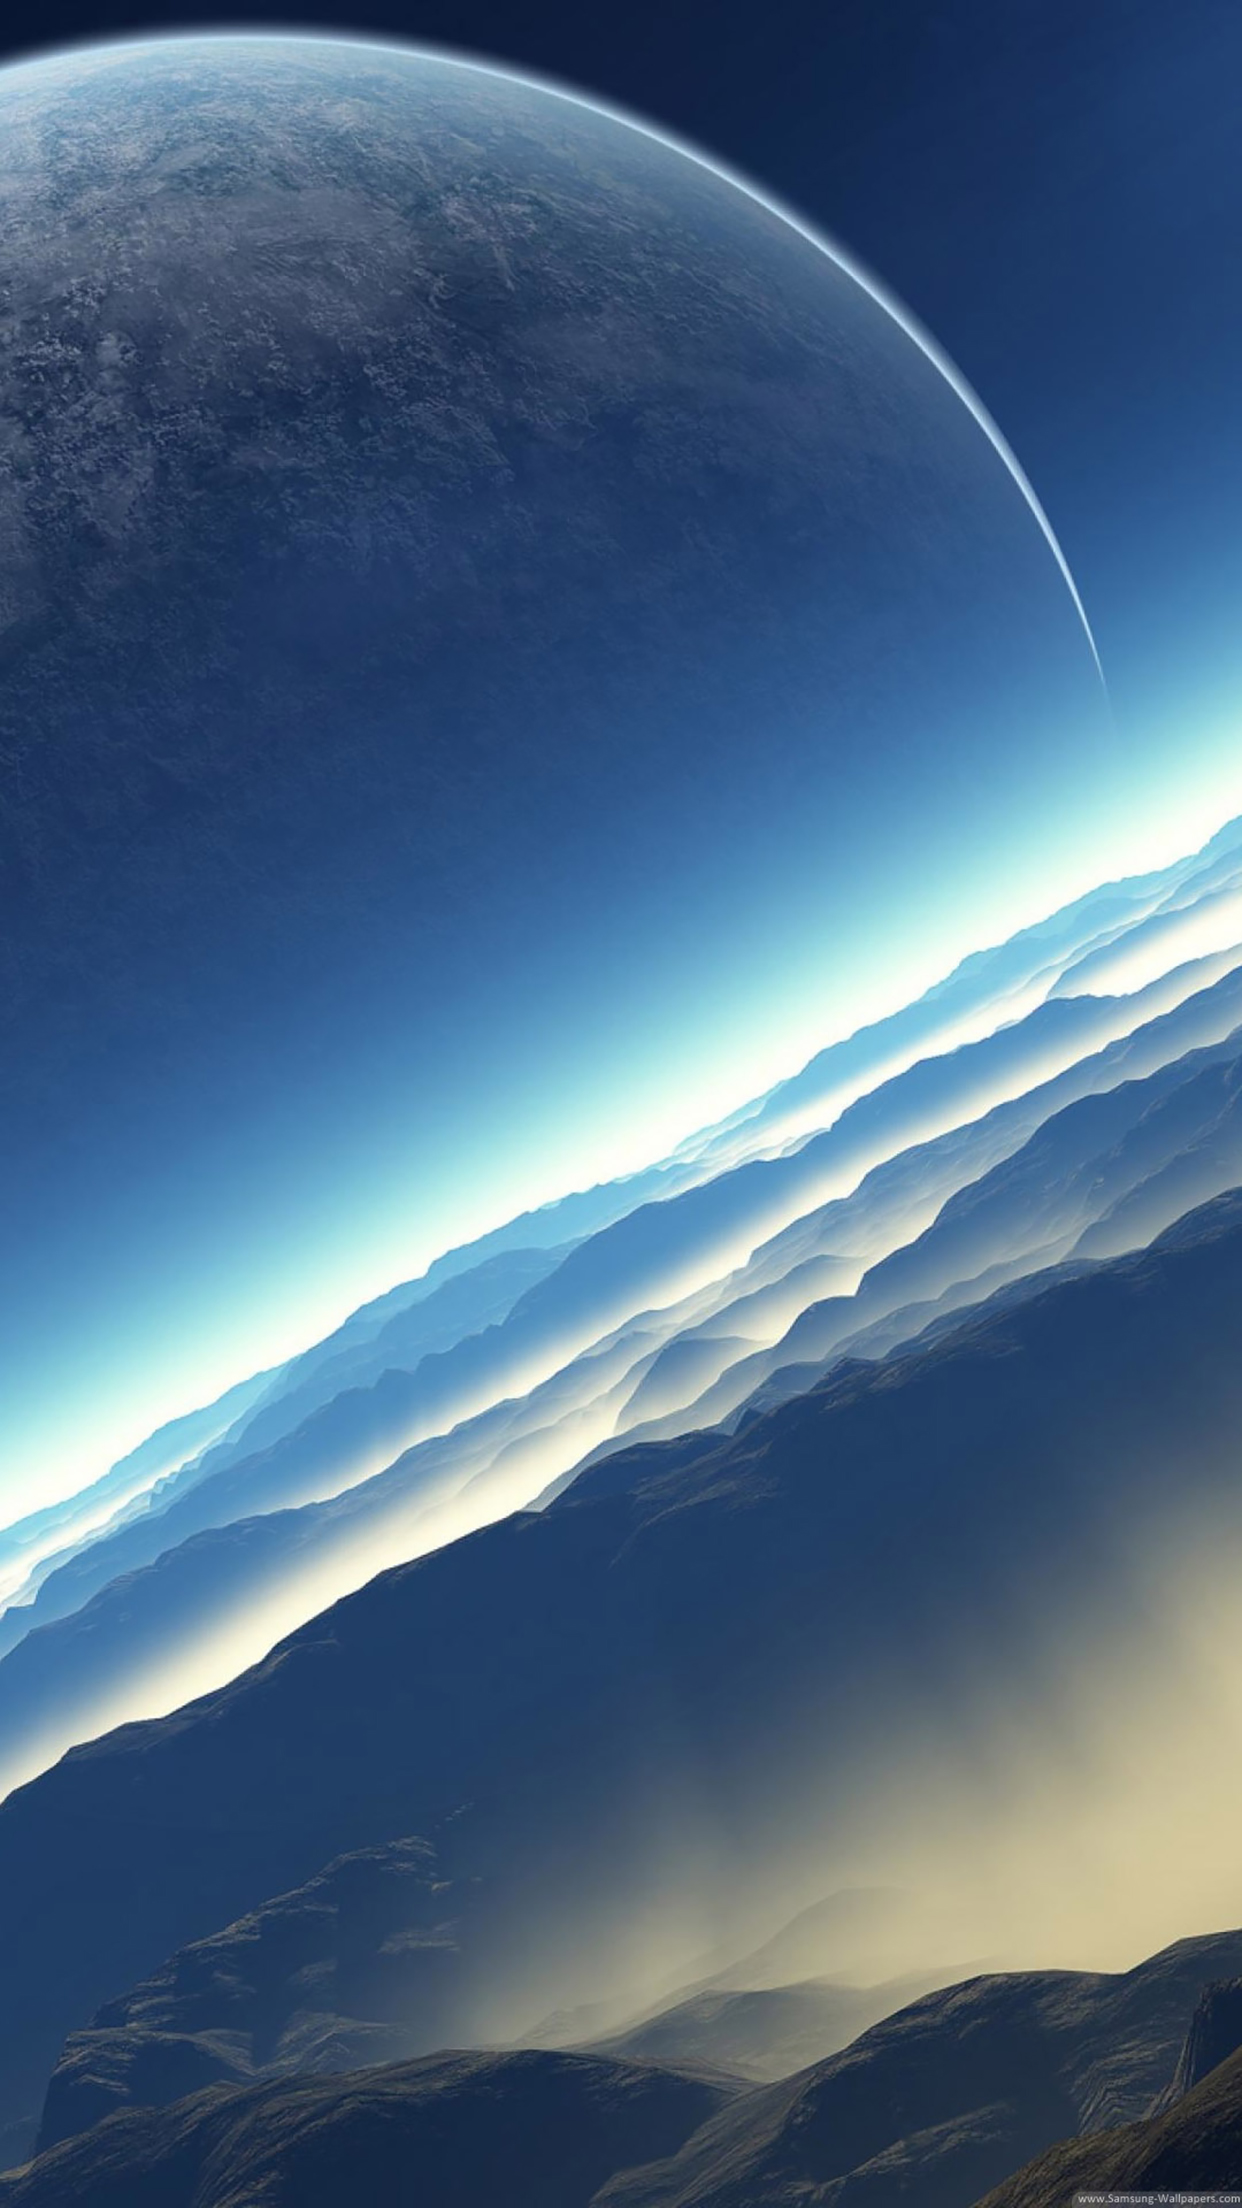 Science fiction exoplanet 3Wallpapers iPhone Parallax Science fiction exoplanet